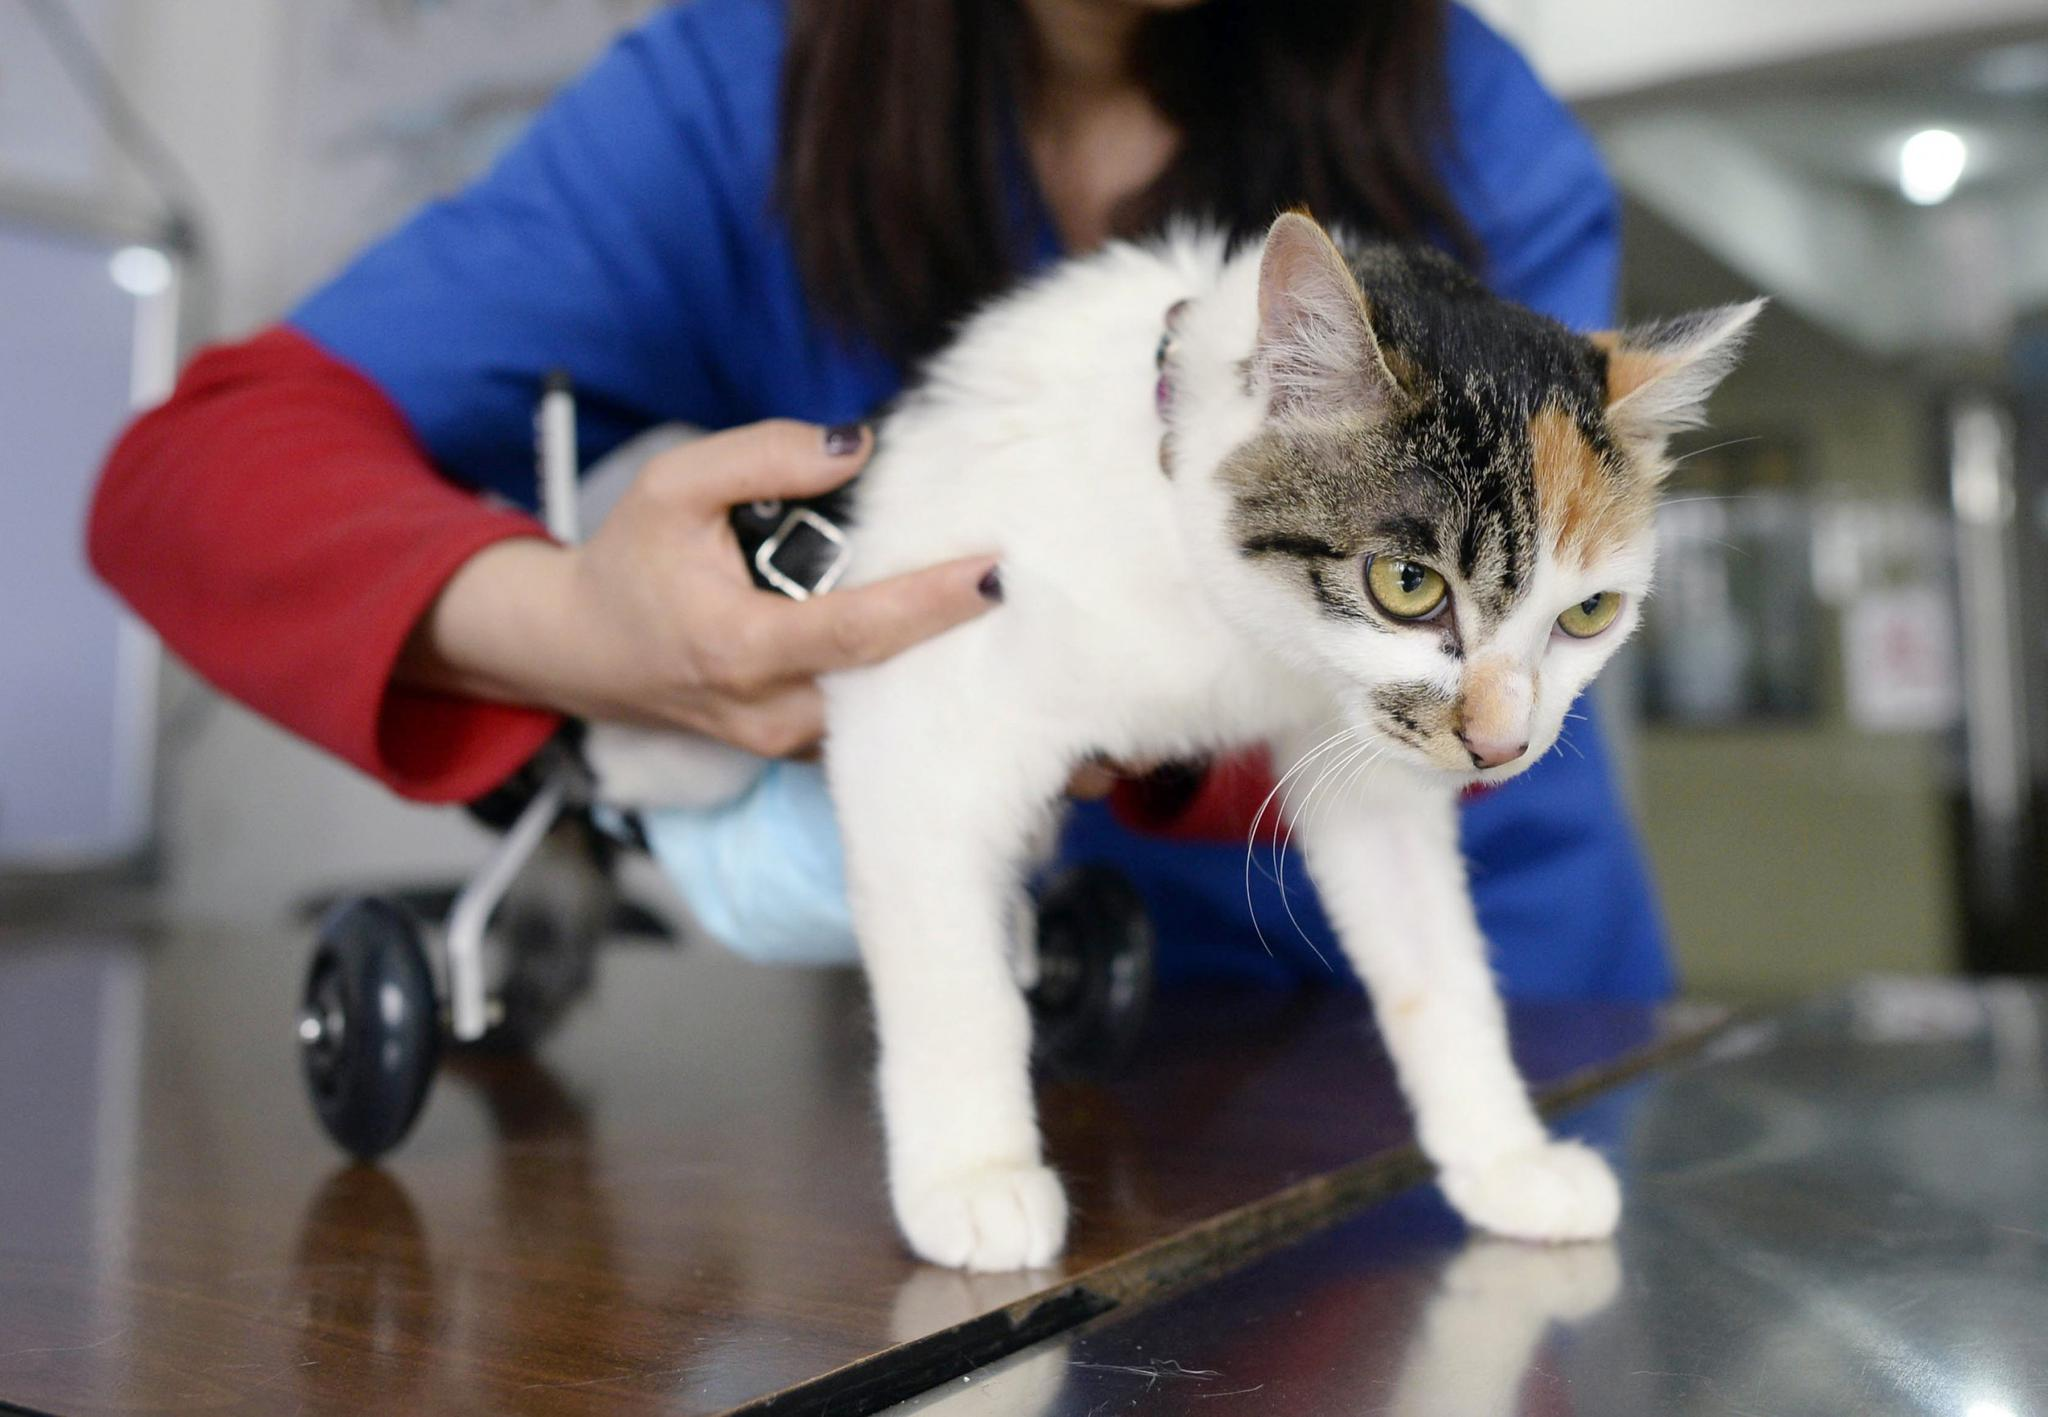 A veterinarian fits an 8-month-old cat in a prosthetic two-wheel device, at a veterinary hospital. Some interns speaking to Newsweek reported unfair working conditions with long hours, little training and, in some cases, abuse.